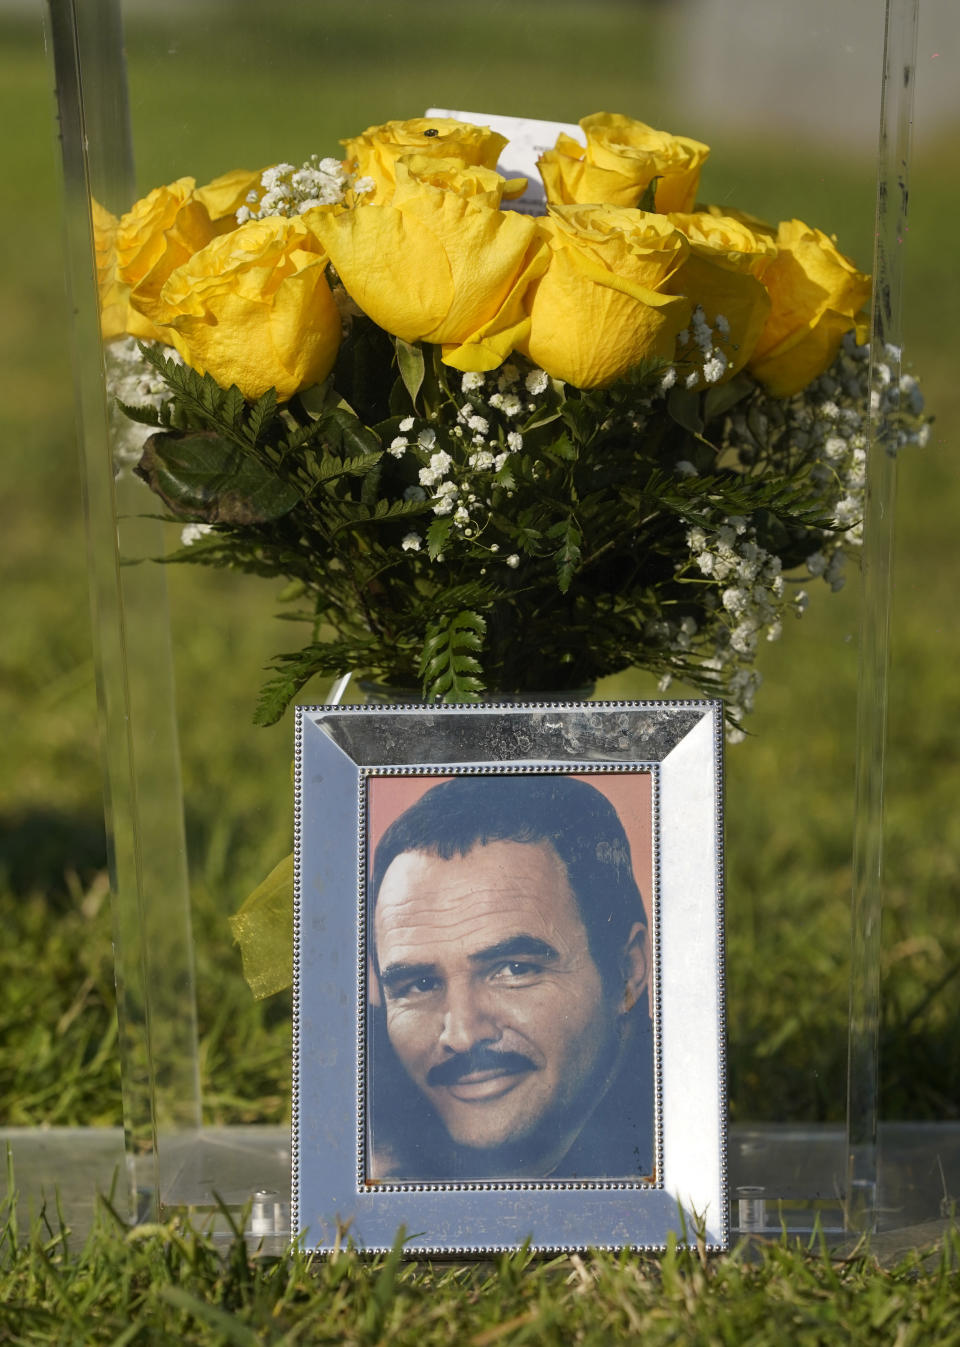 A portrait of the late actor Burt Reynolds sits in front of flowers during a ceremony featuring the unveiling of a memorial sculpture of Reynolds at Hollywood Forever Cemetery, Monday, Sept. 20, 2021, in Los Angeles. Reynolds died in 2018 at the age of 82. (AP Photo/Chris Pizzello)